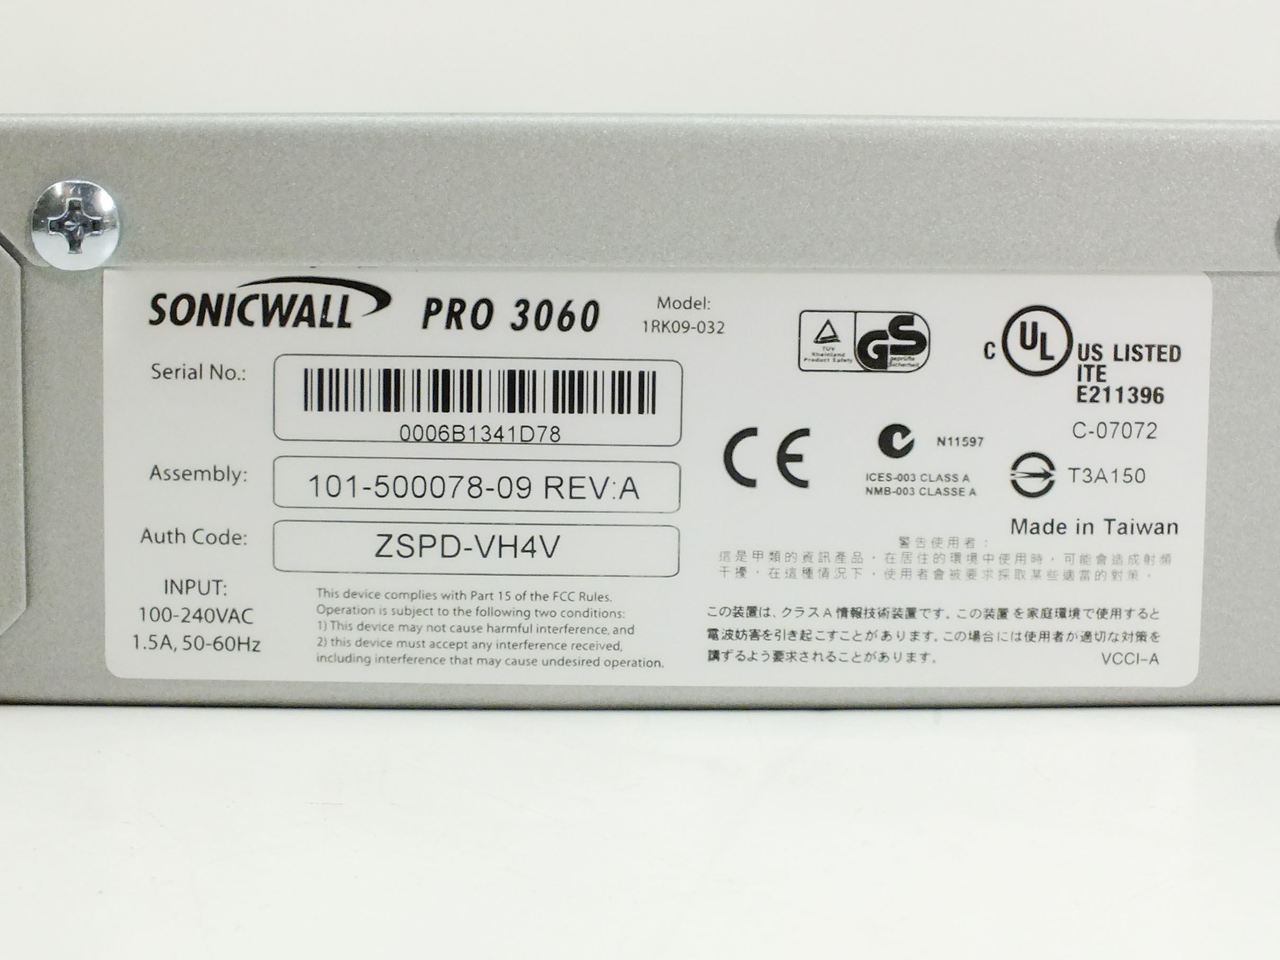 Sonicwall 1rk09 032 Pro 3060 6 Port Enhanced Network